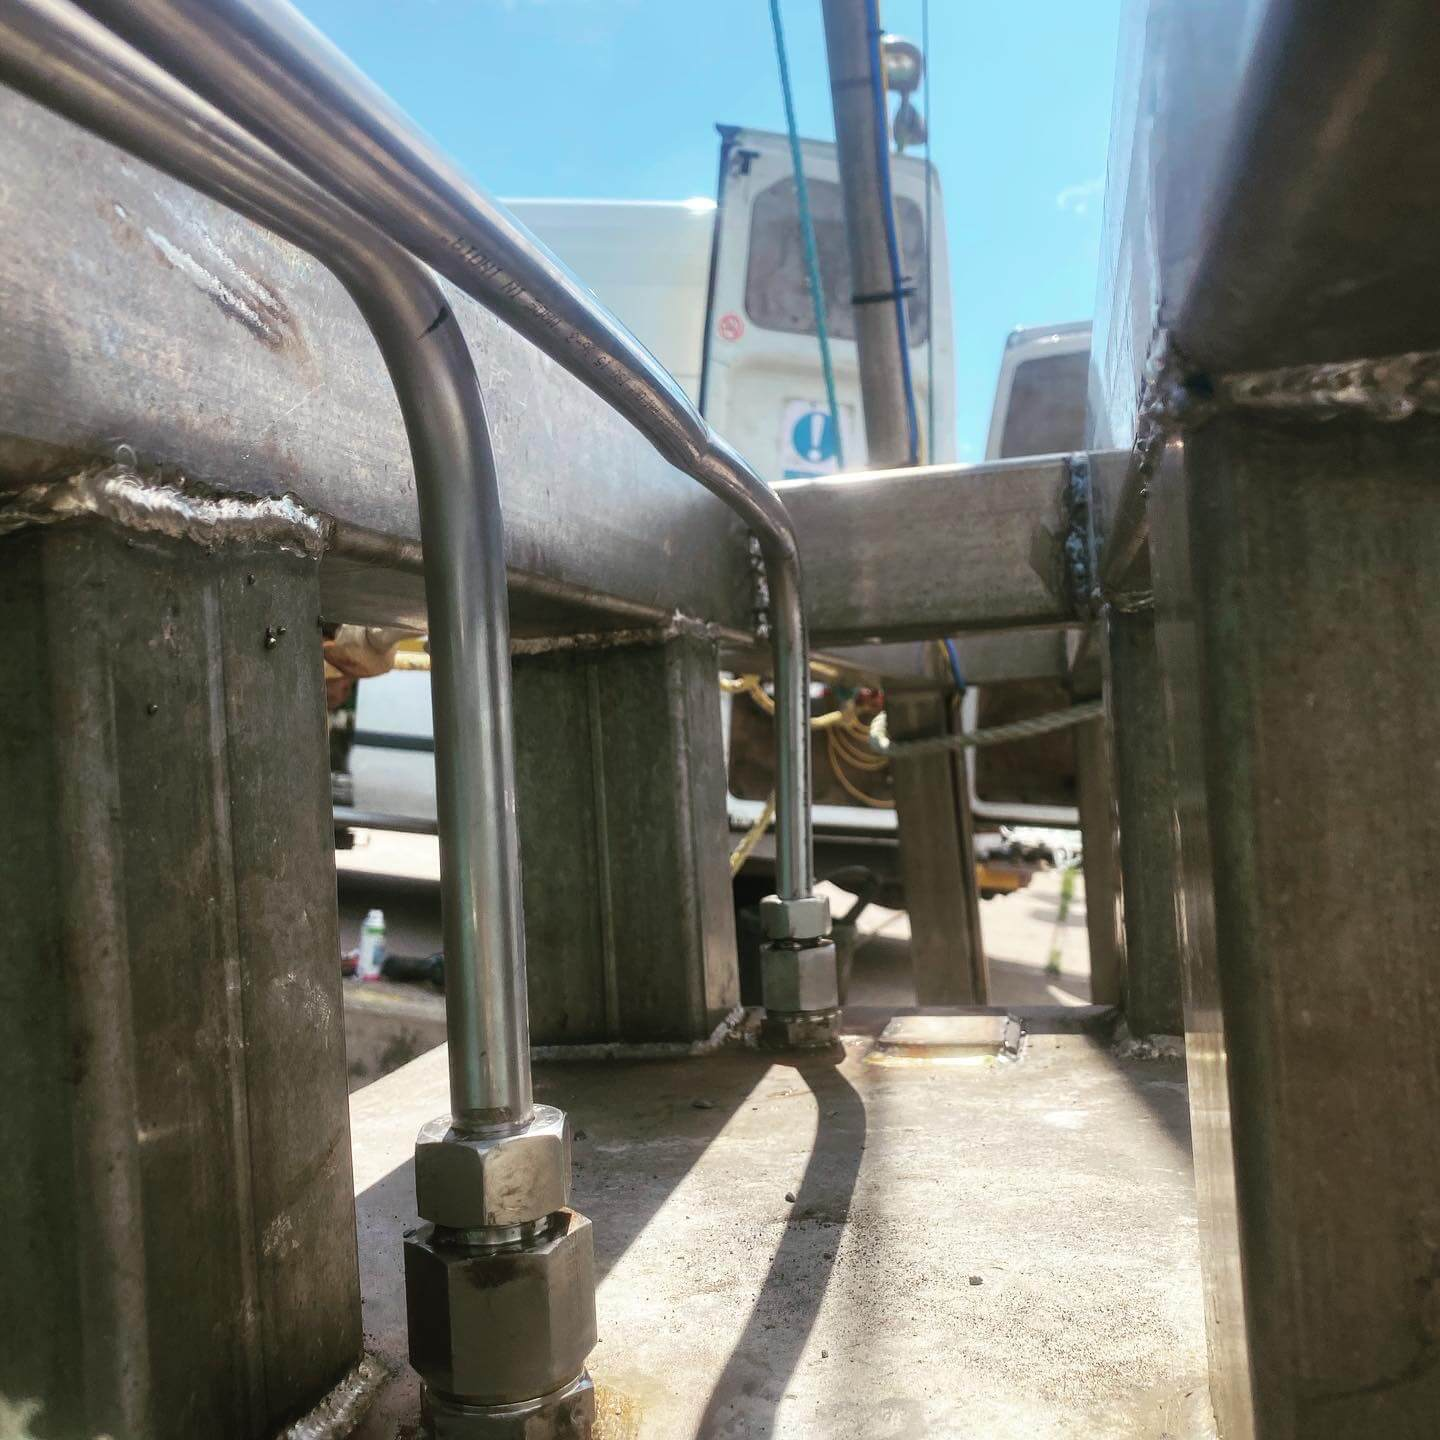 Call out hydraulic systems work